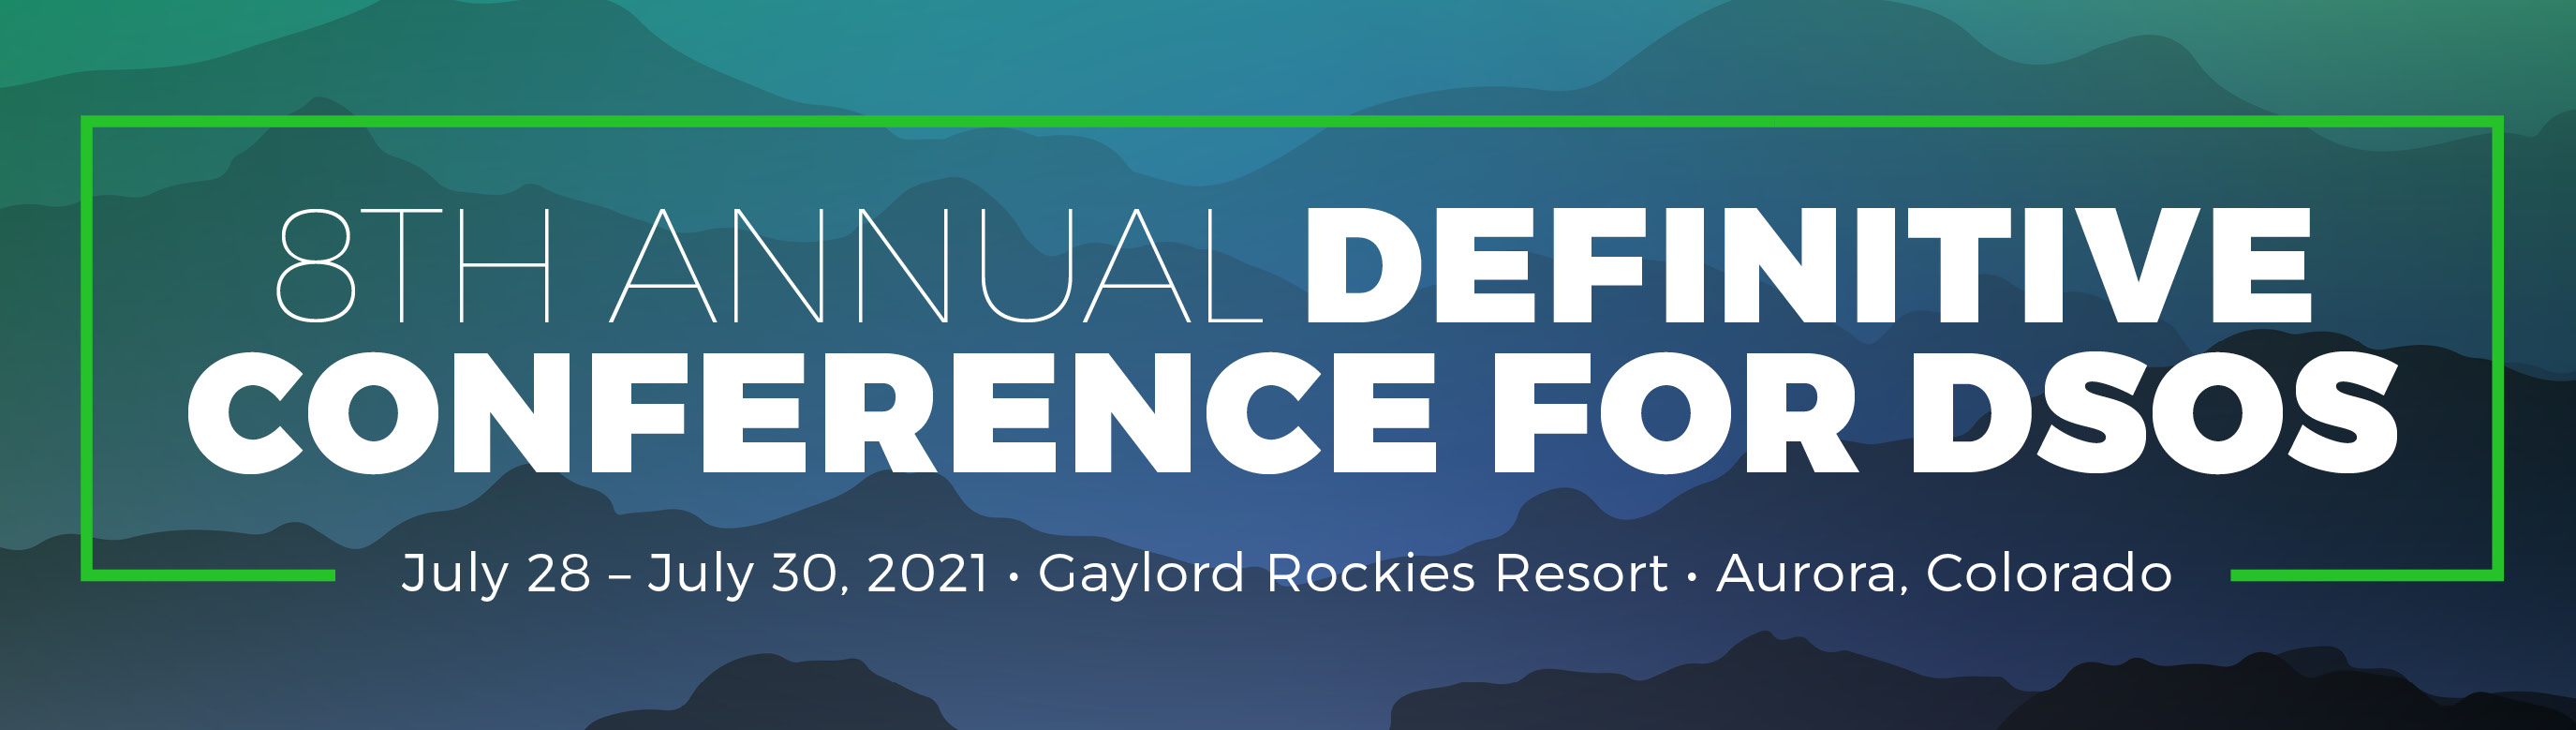 8th Annual Definitive Conference for Dental Service Organizations